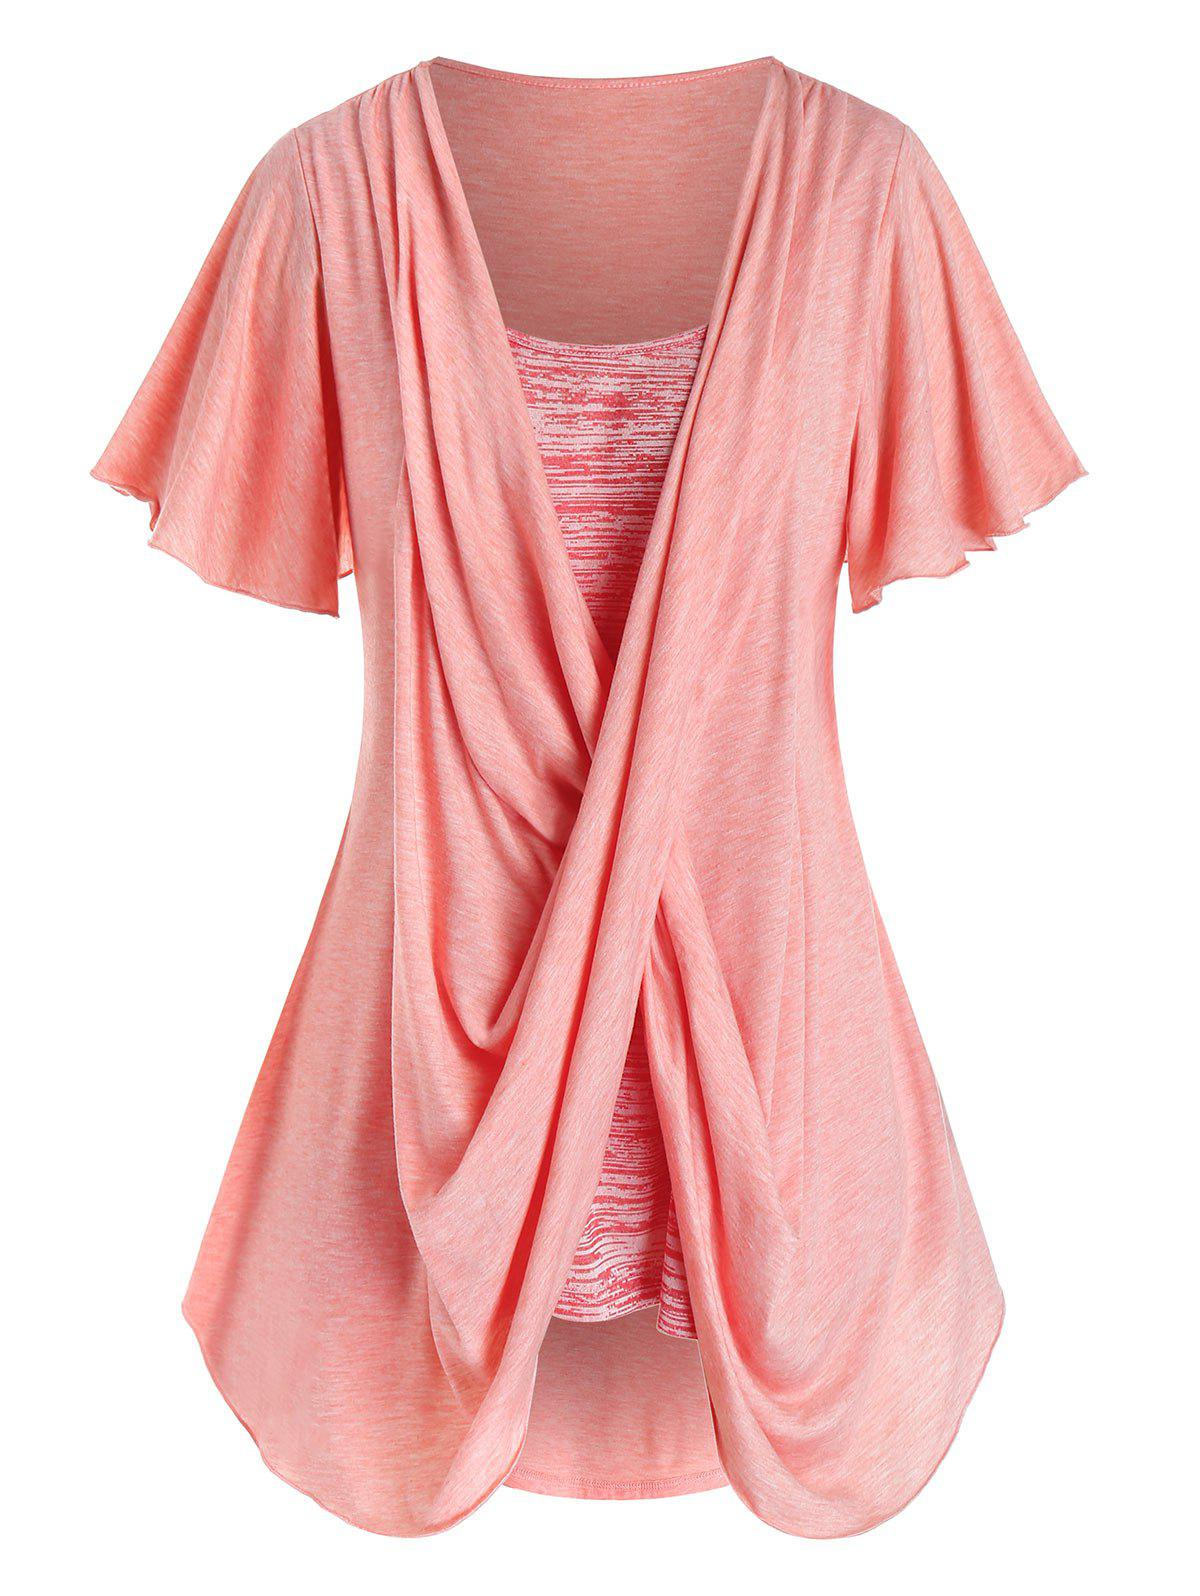 Plus Size Crossover Space Dye Flutter Sleeve Tunic Tee - FLAMINGO PINK 2X